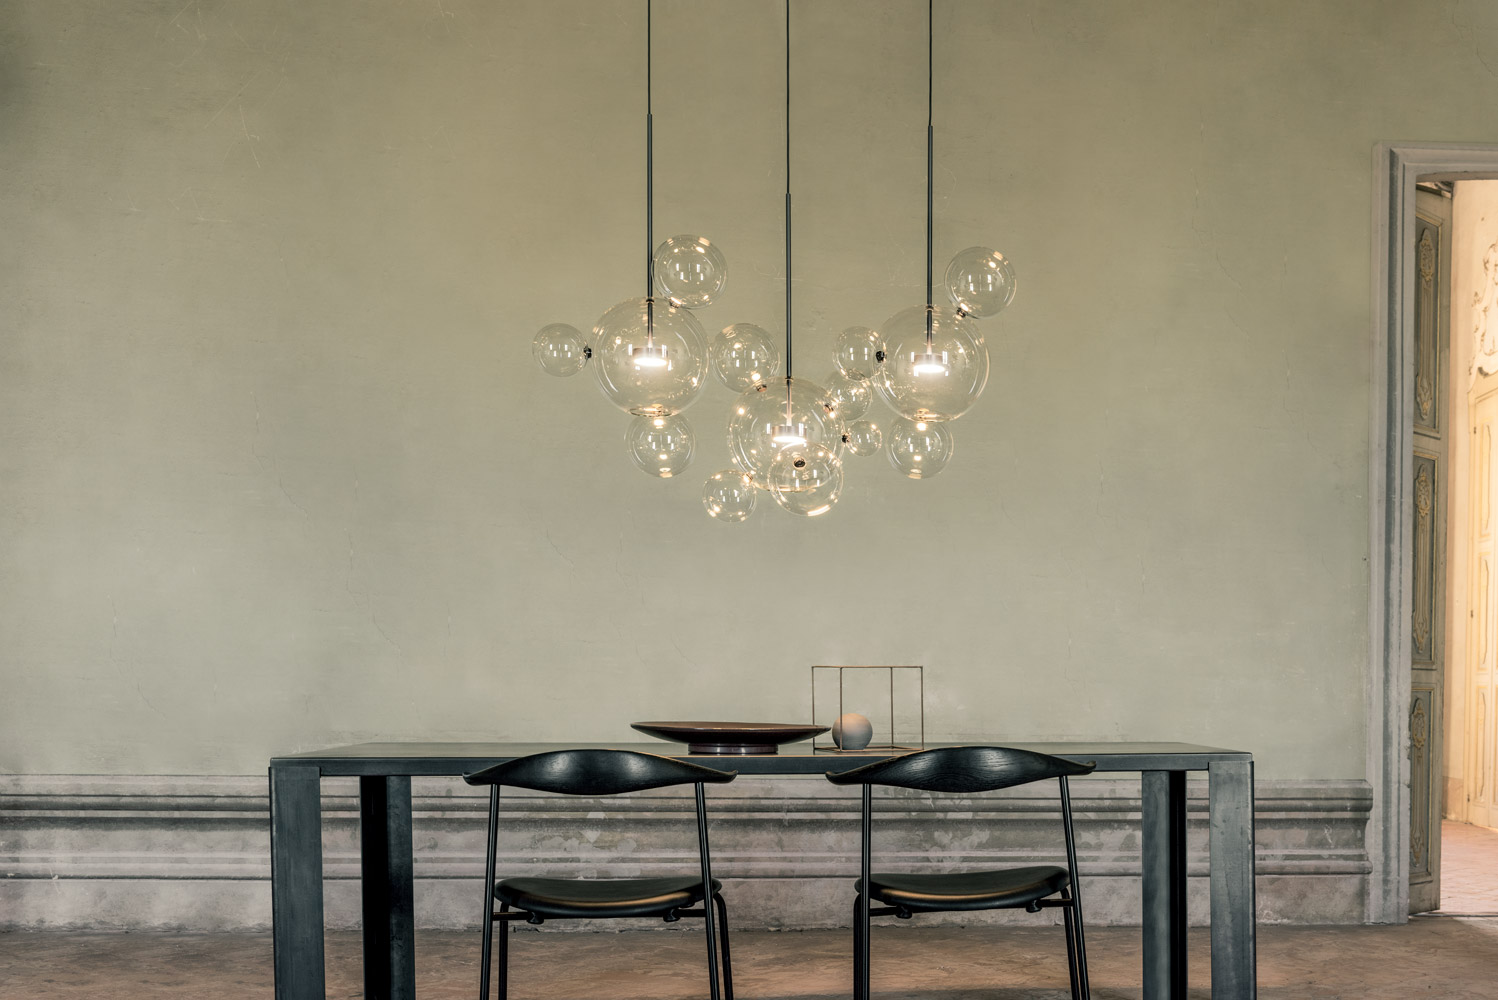 Giopato_coombes_Ph_Nathalie_Krag_2019_Bolle-Chandelier-14L_02_low.jpg